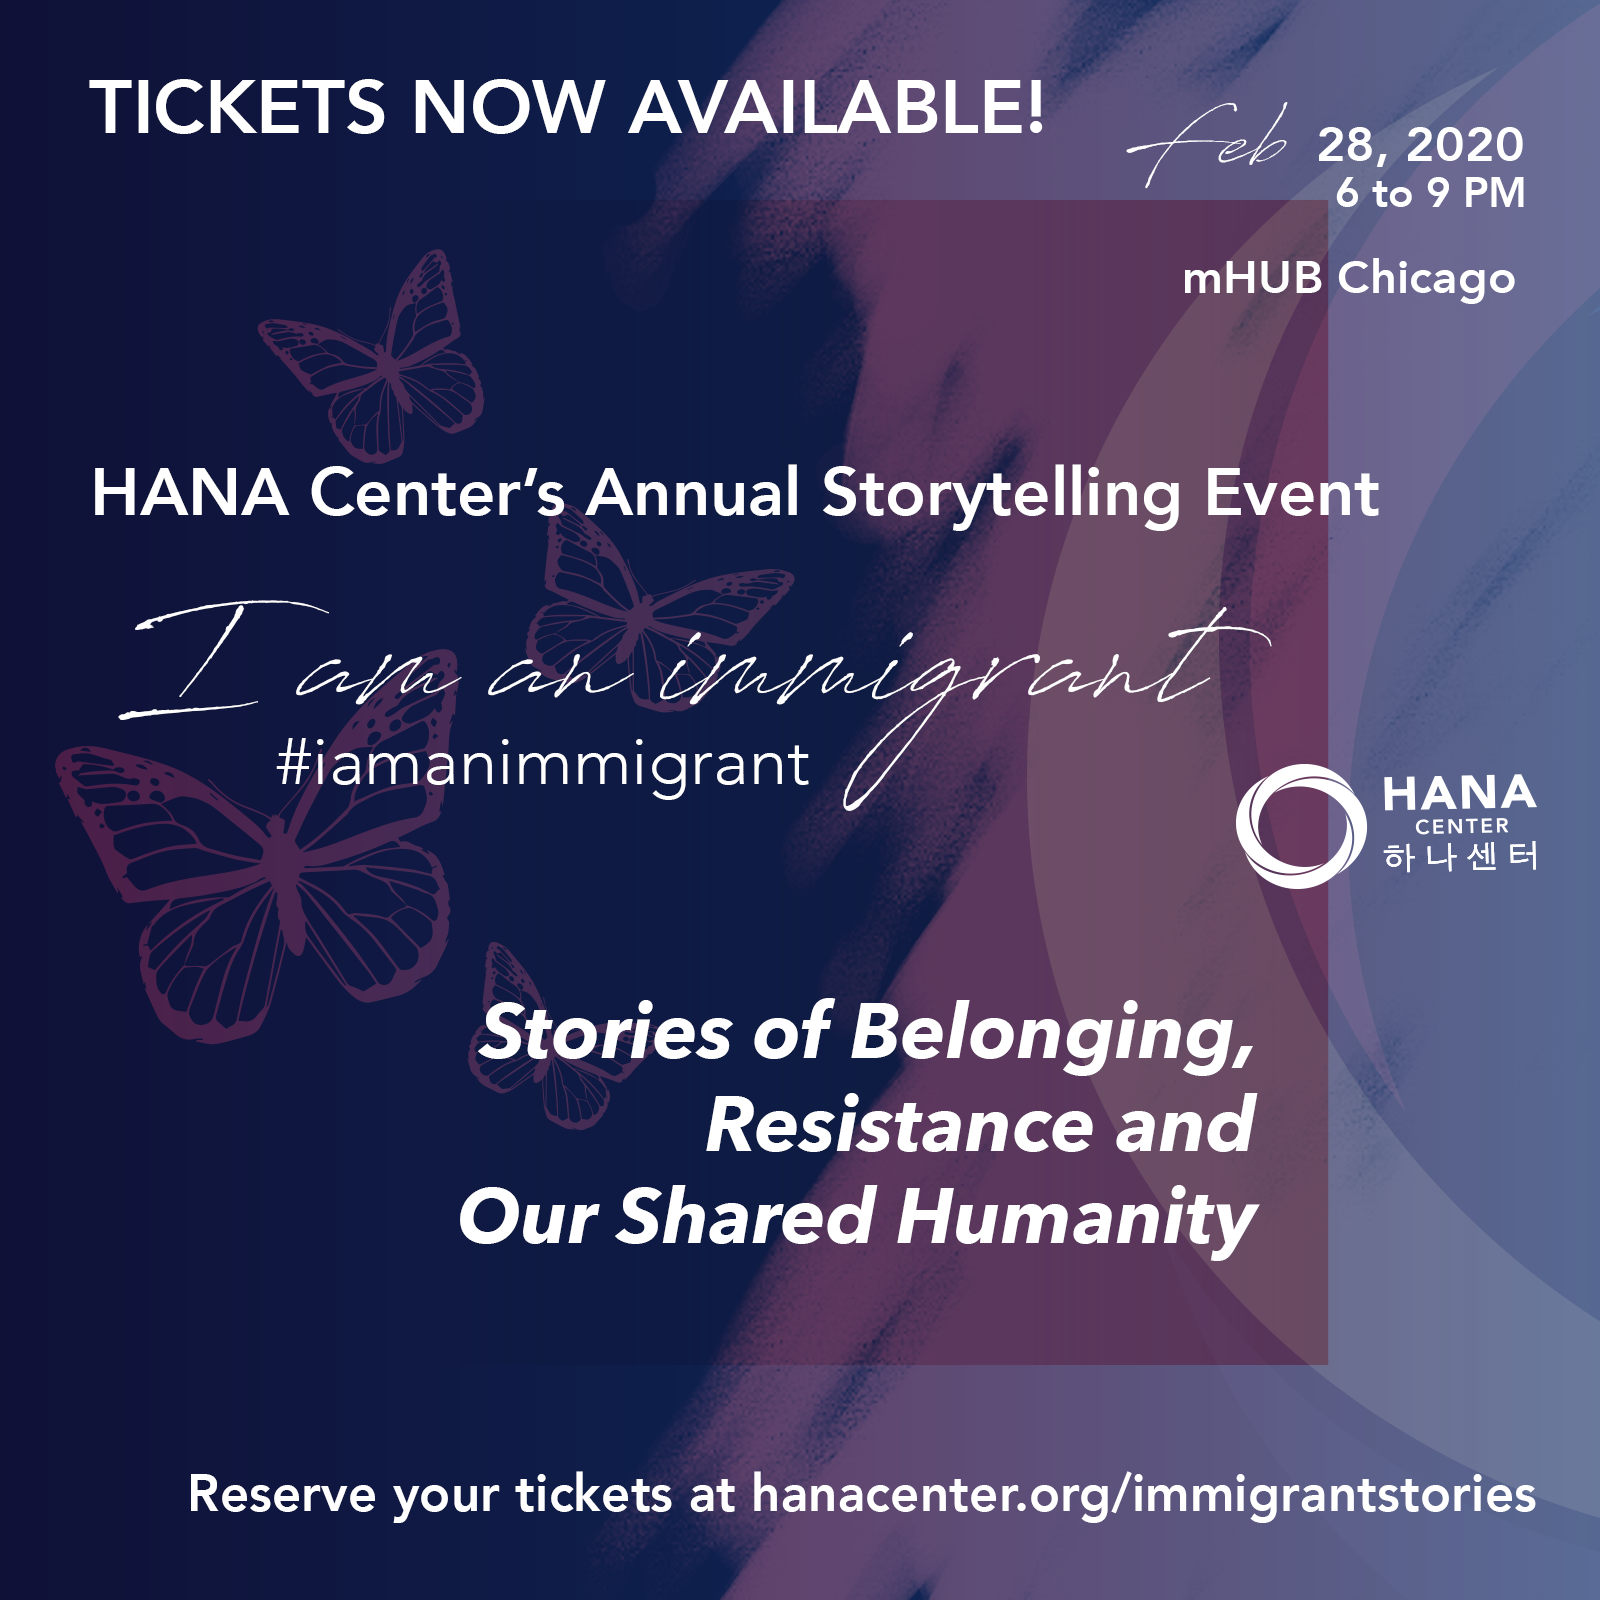 HANA Center Presents #IAmAnImmigrant